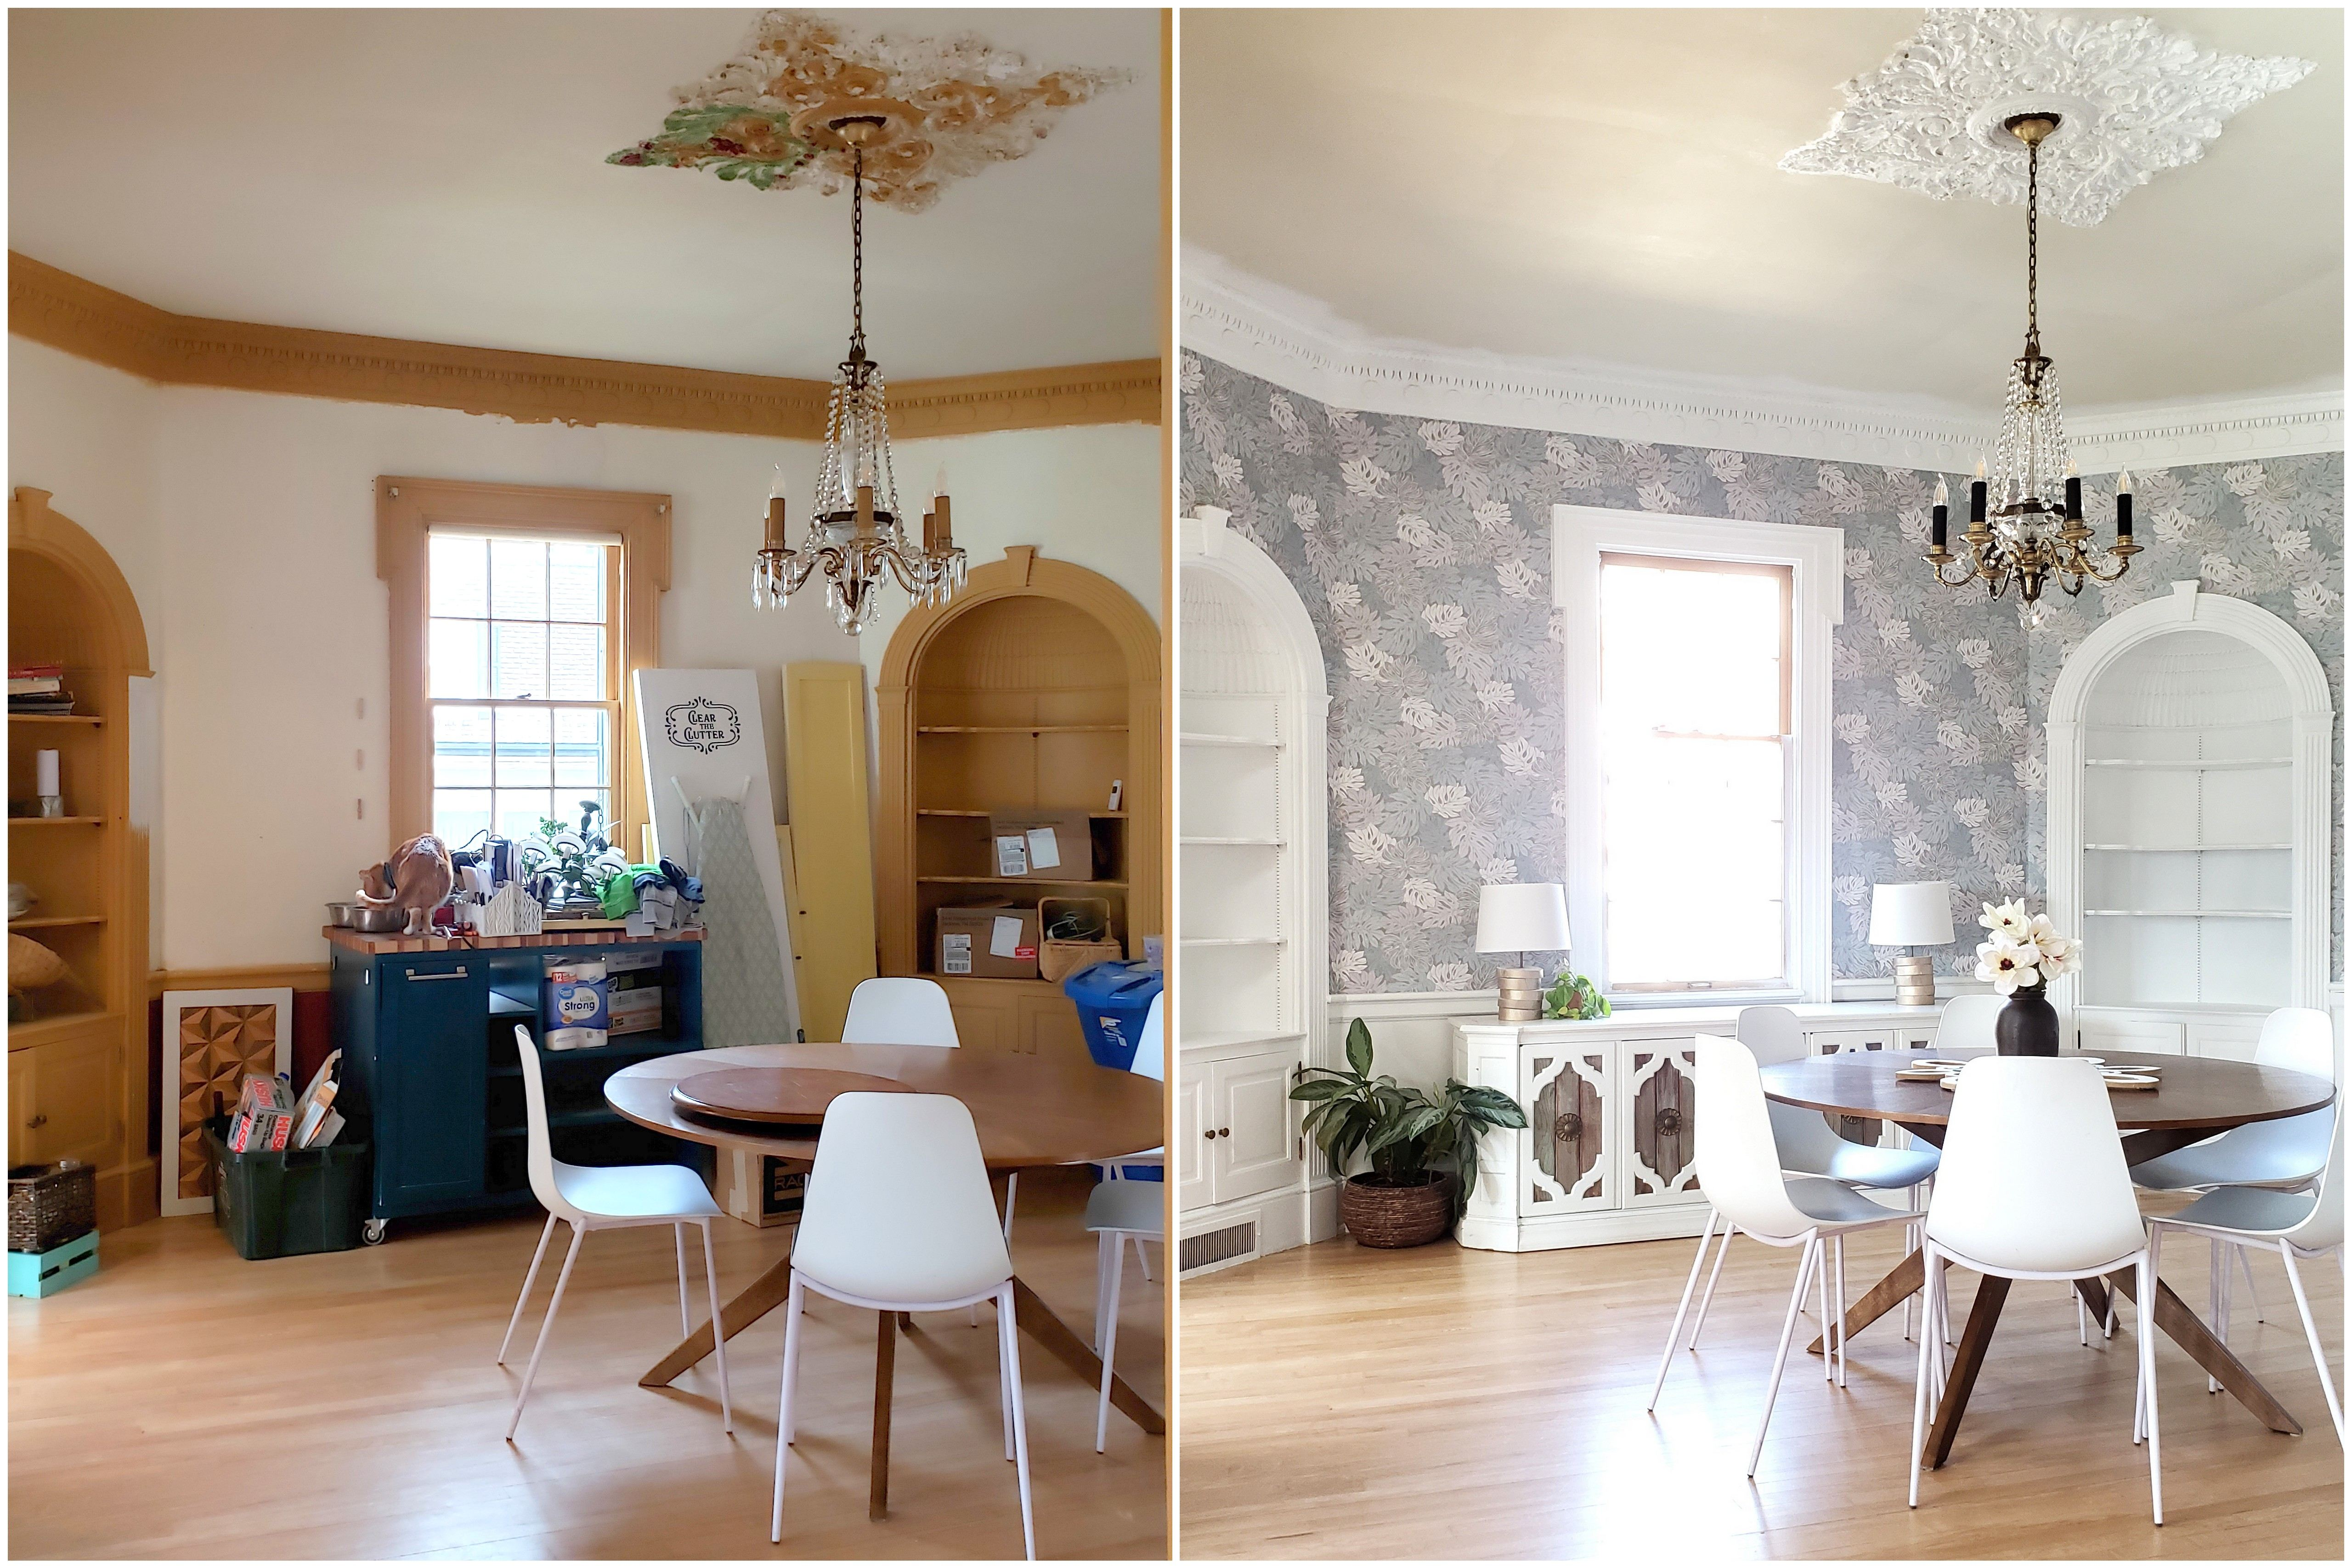 Putting Up Wallpaper With Wallpaper Paste Reality Daydream